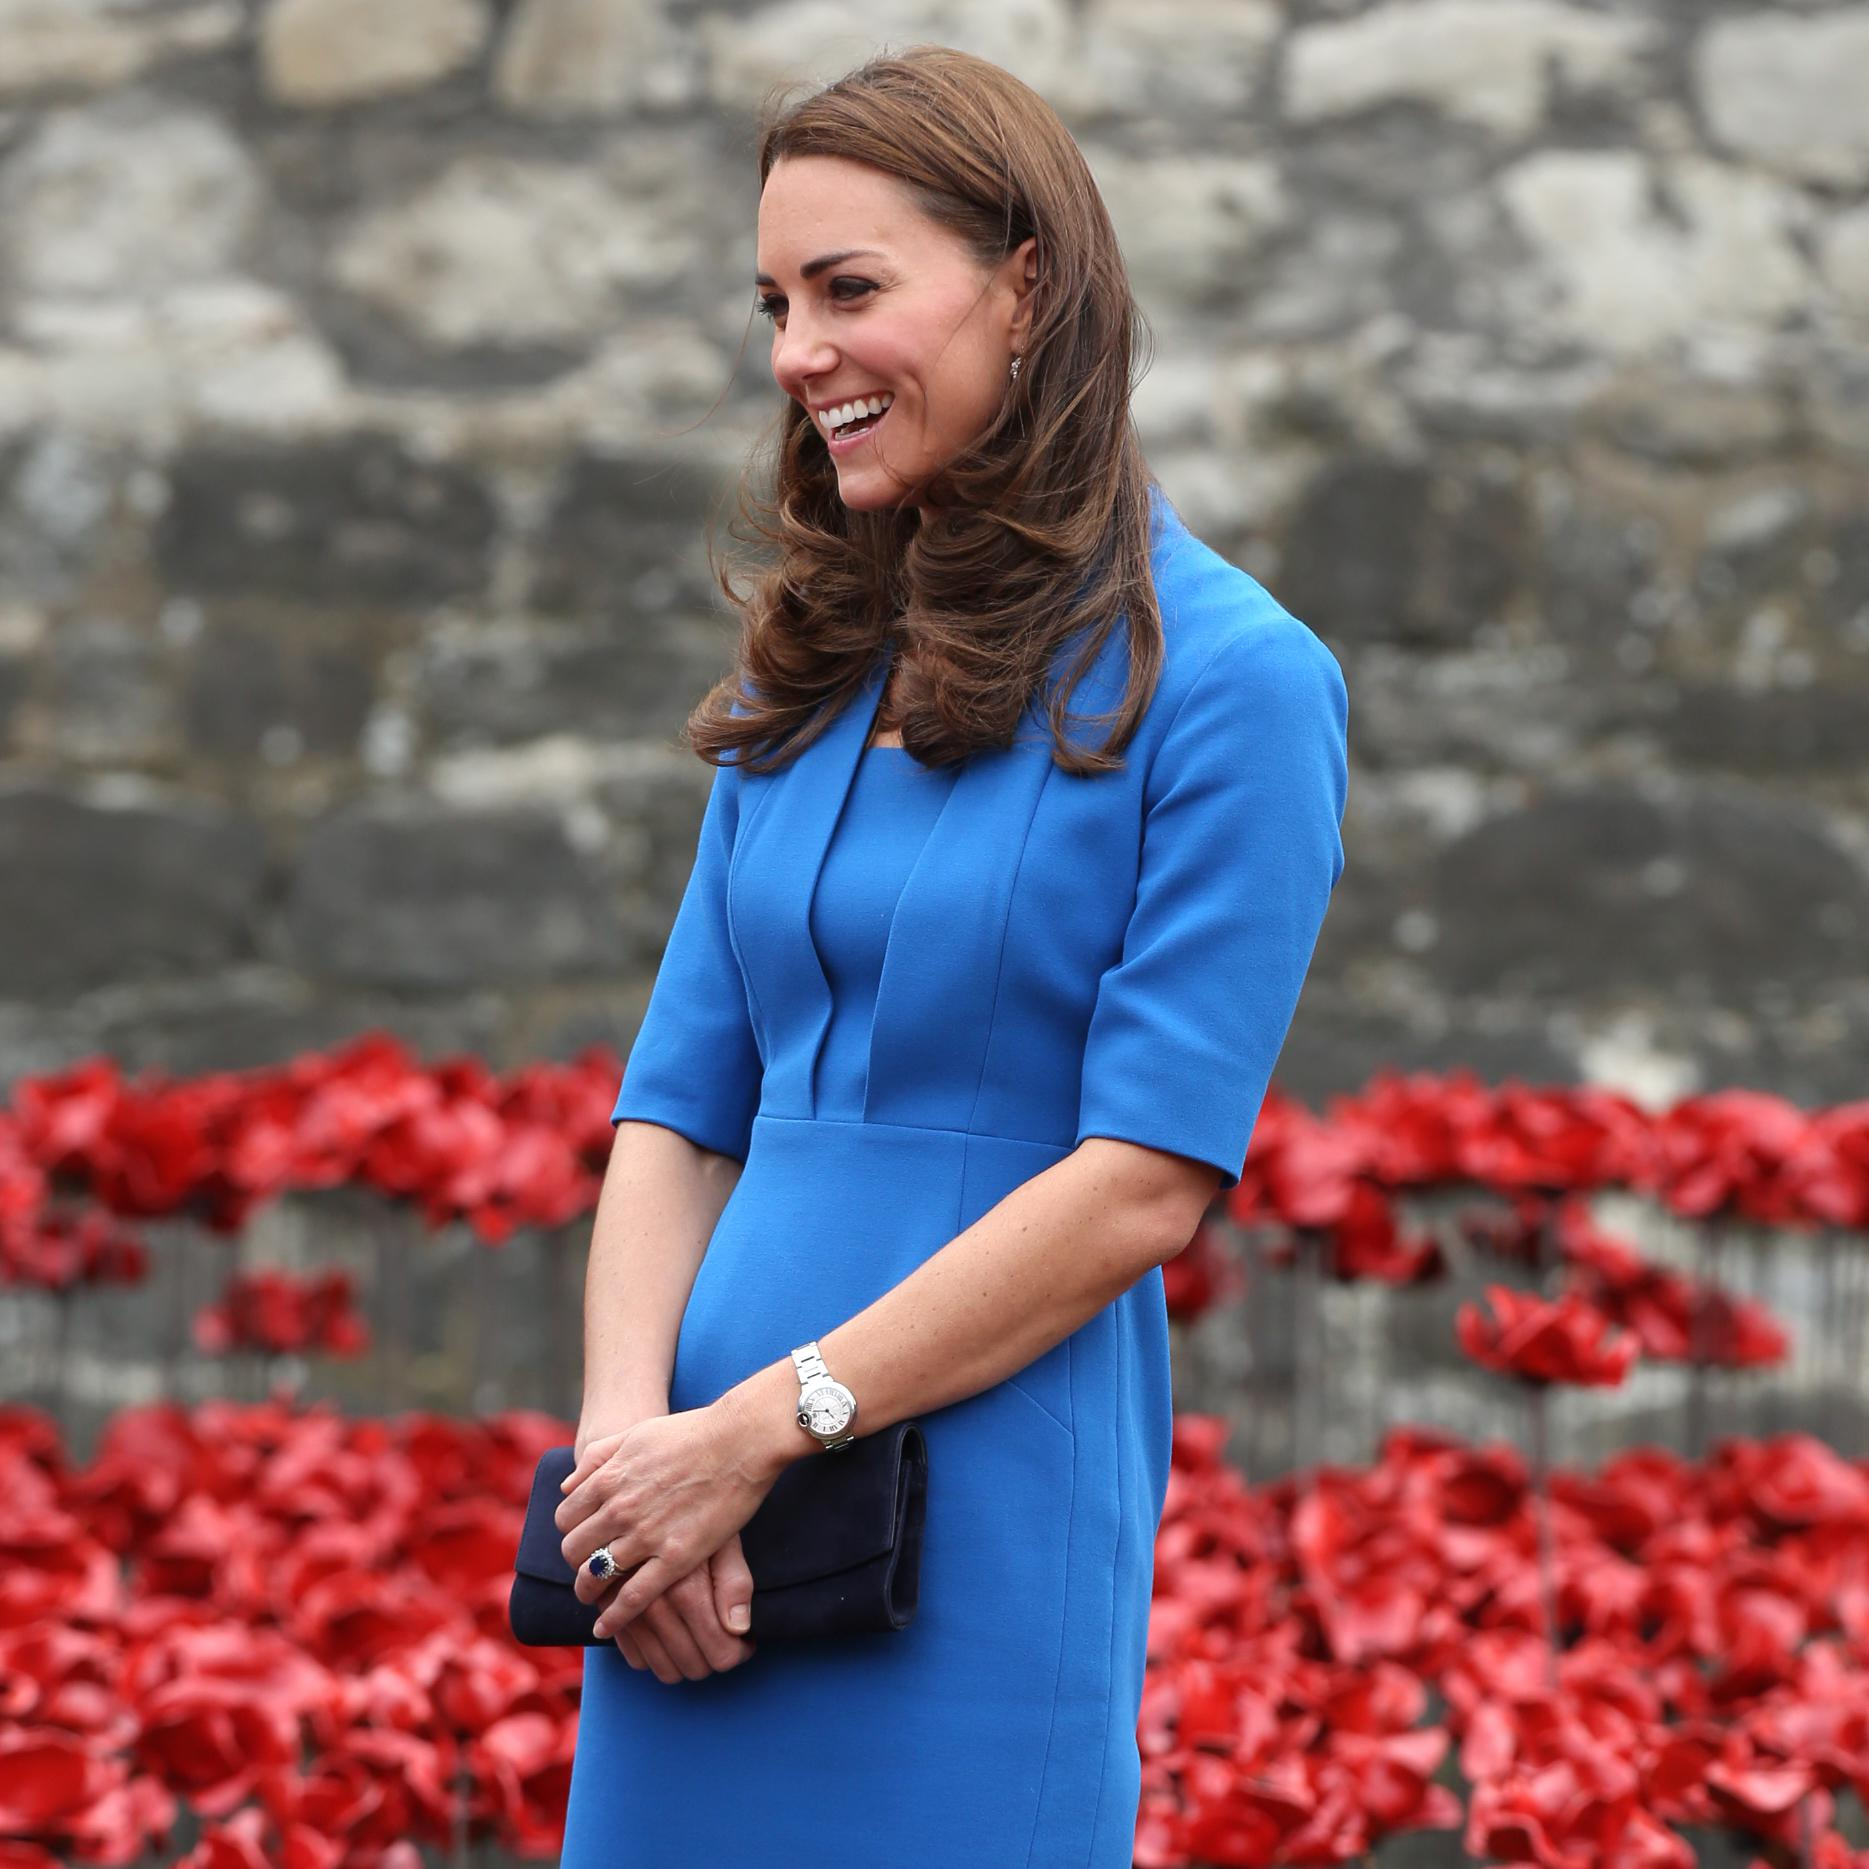 C'est Officiel : Kate Middleton Est Enceinte, Un Royal